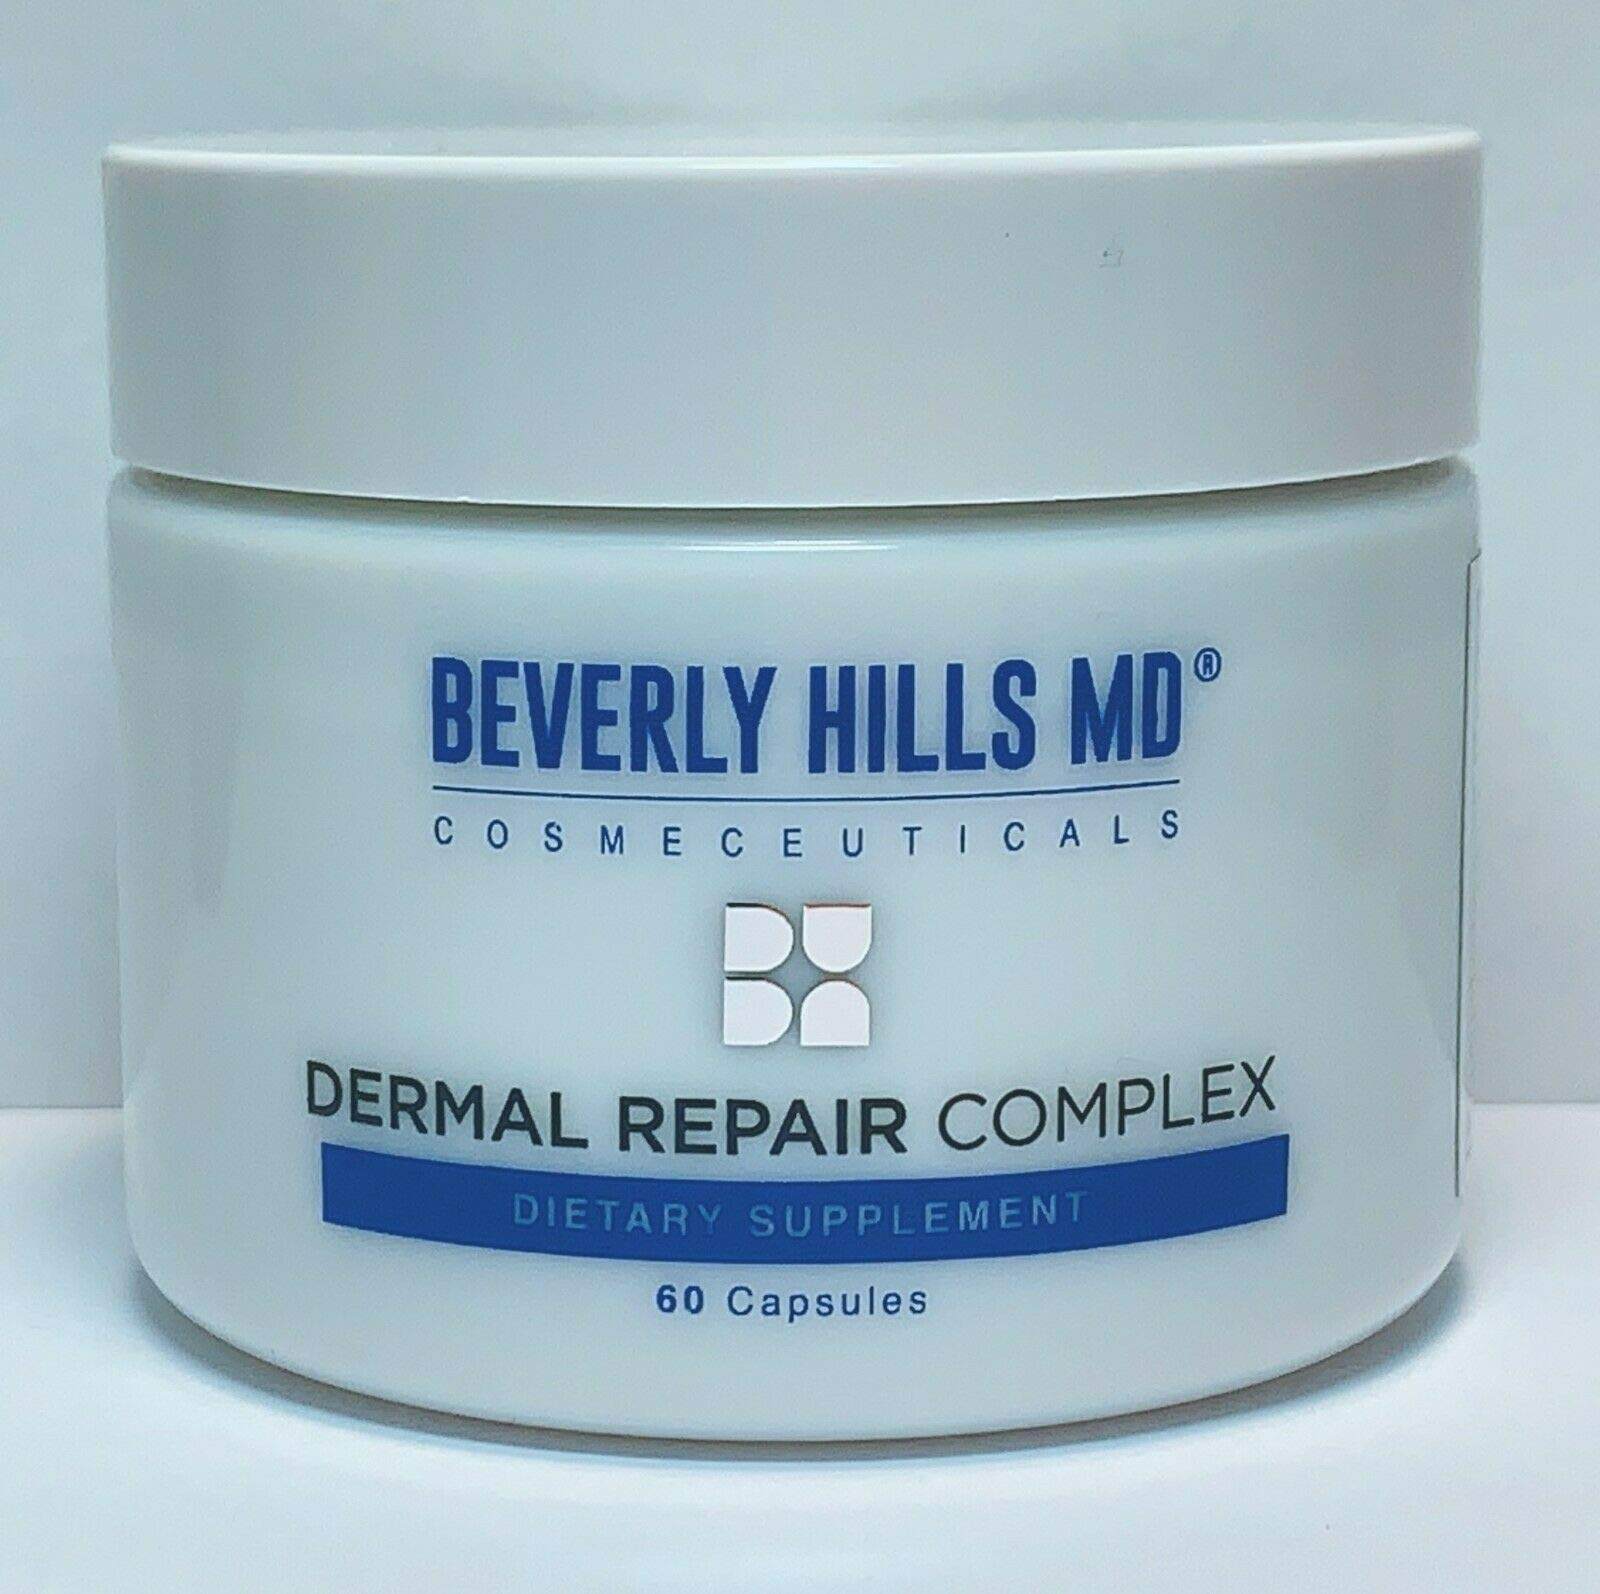 Dermal Repair Complex Review [Must Read]: Scam Side effects, Does it really work?